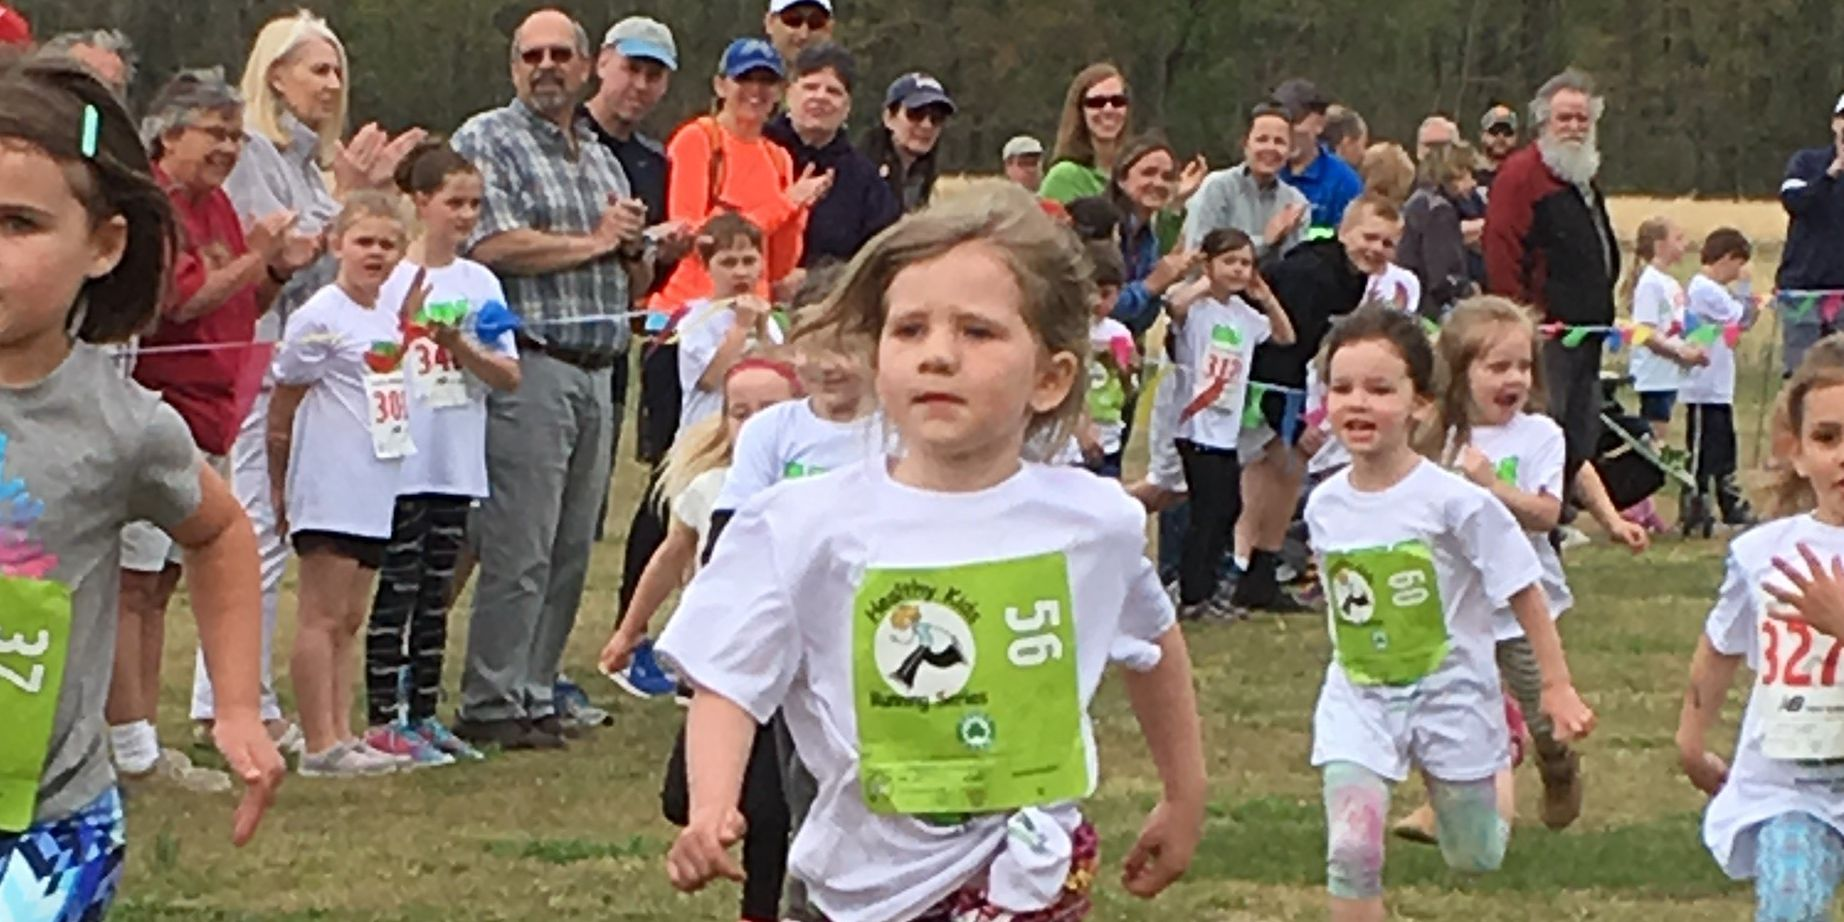 Running program aims to curb obesity, teach children healthy habits